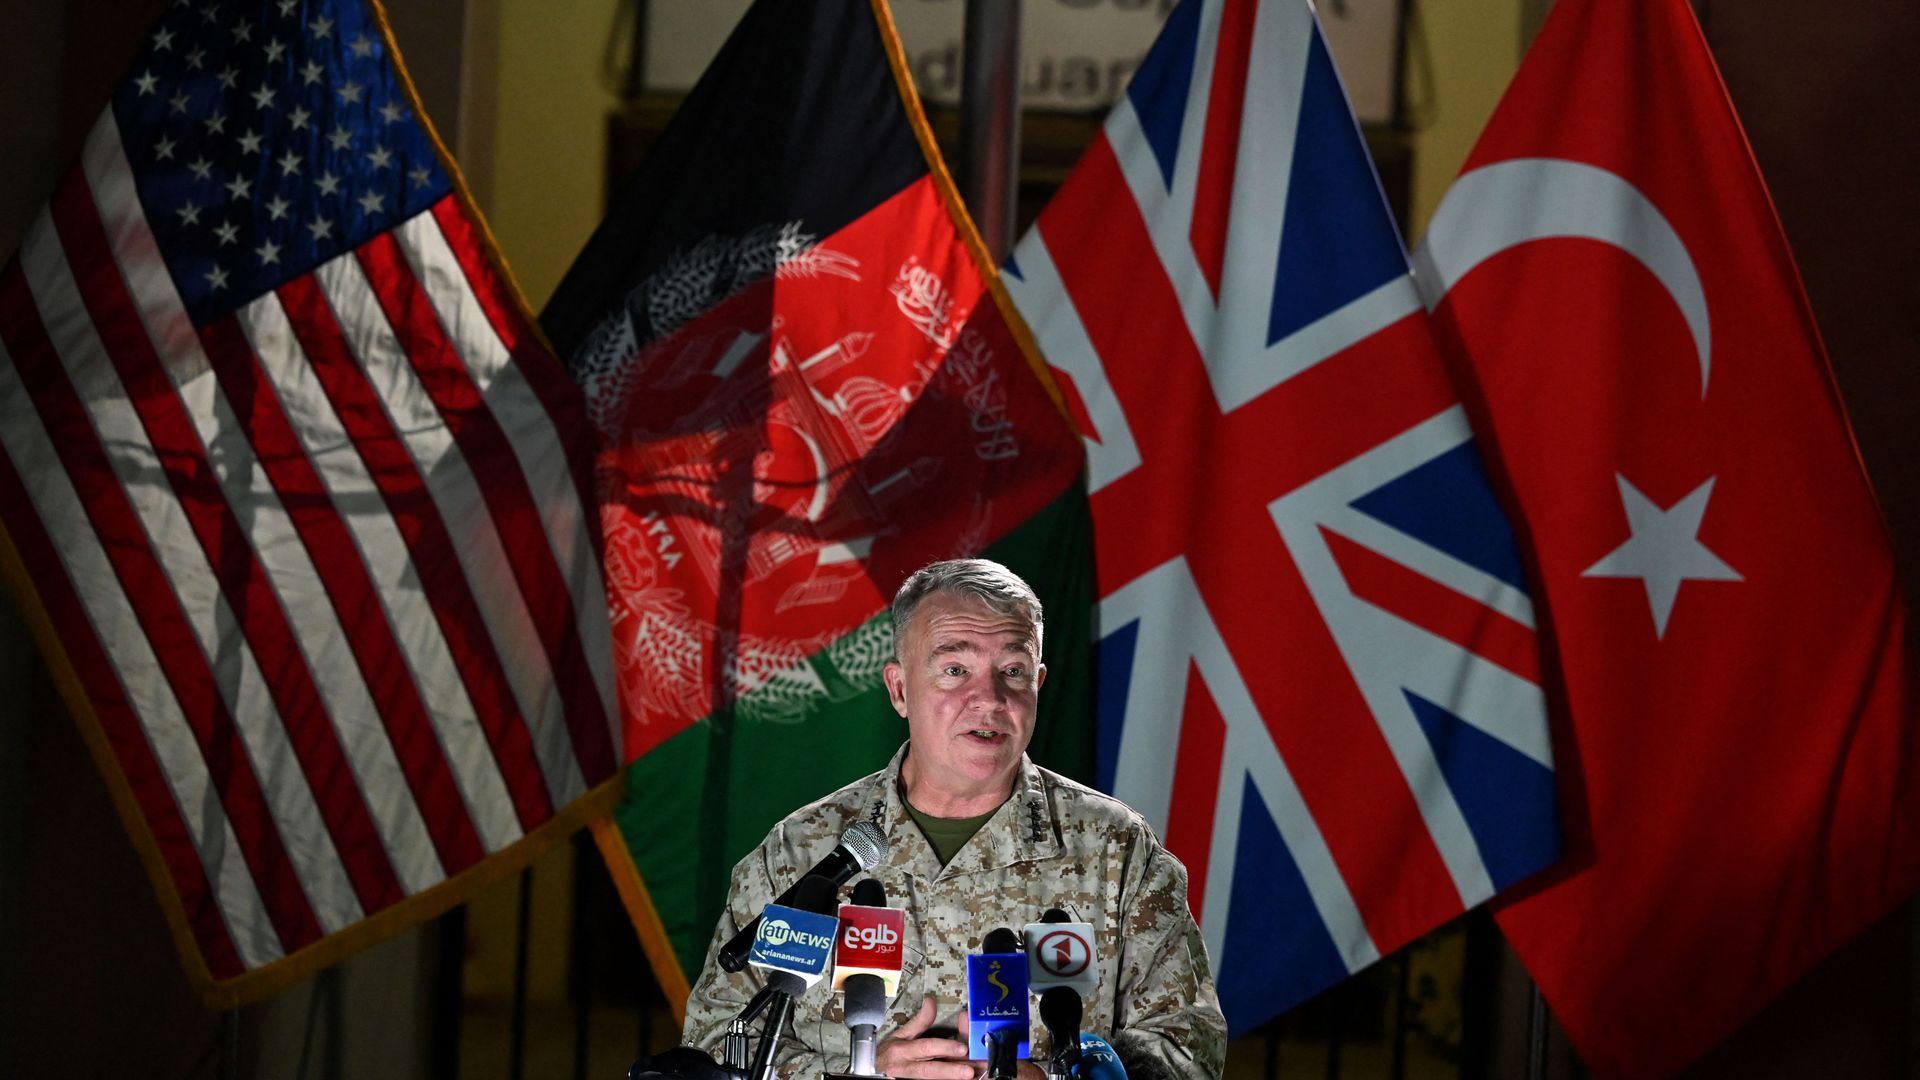 Head of the US Central Command, General Kenneth McKenzie, speaks during a press conference at the former Resolute Support headquarters in the US embassy compound in Kabul on July 25, 2021.